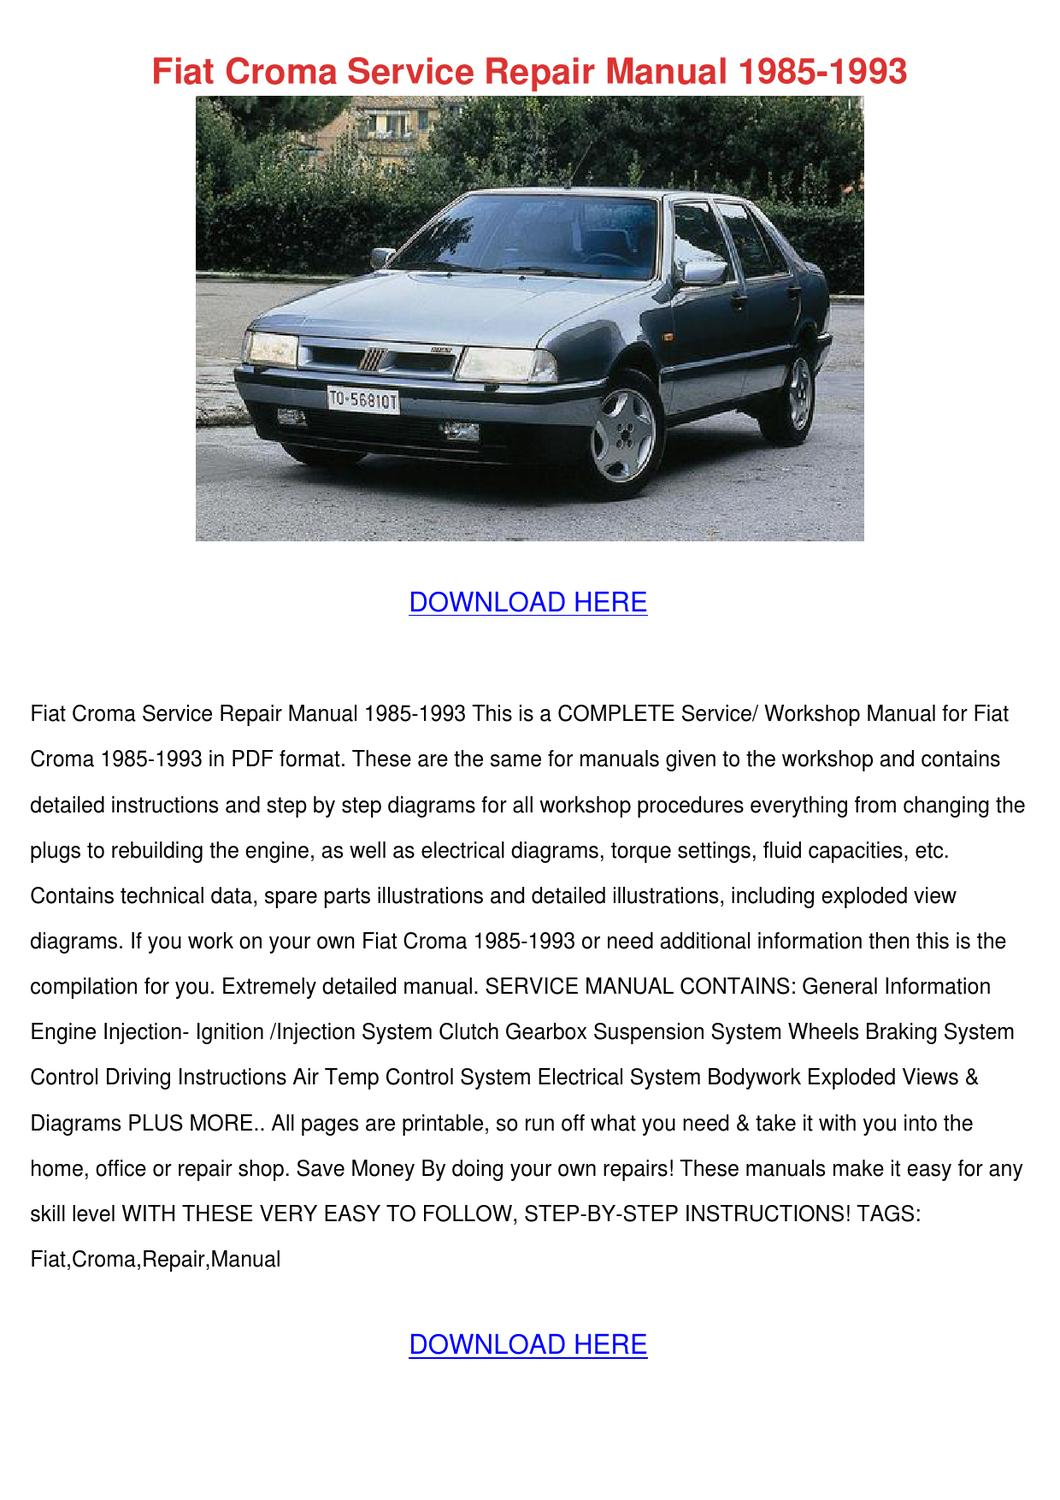 Fiat Croma Service Repair Manual 1985 1993 By Isabelgandy